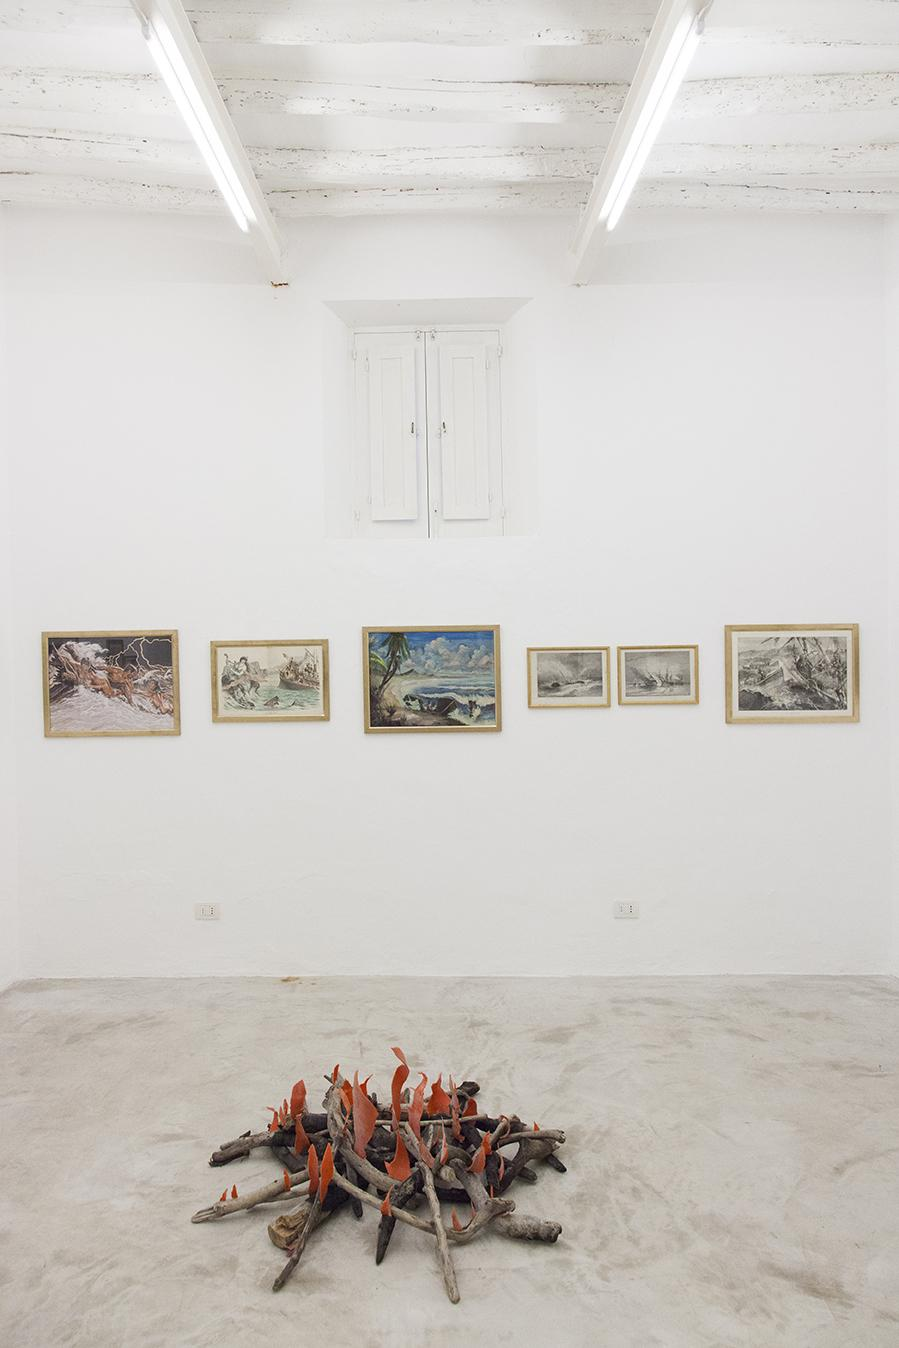 "Installation view ""I Will Go Where I Don't Belong"" On the back: Works from the Henrot Family Collection In the front: Mike Nelson, /Diyagram (Amnesiac beach fire)/, 2015 Wood and plastic © Mike Nelson, courtesy 303 Gallery, New York  Photo: Giovanna Silva. Courtesy Fiorucci Art Trust, London"